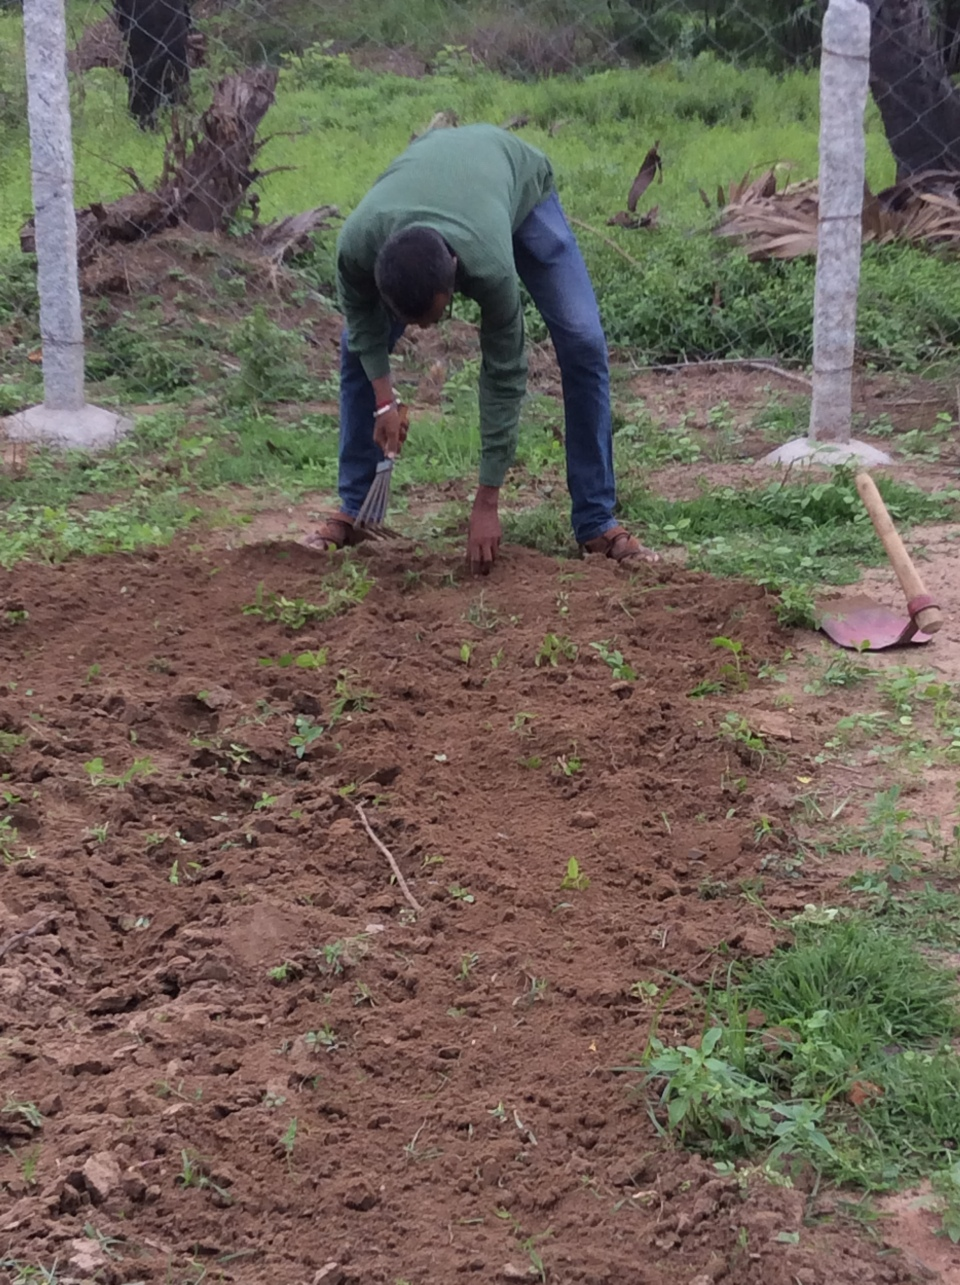 An organic garden, first steps